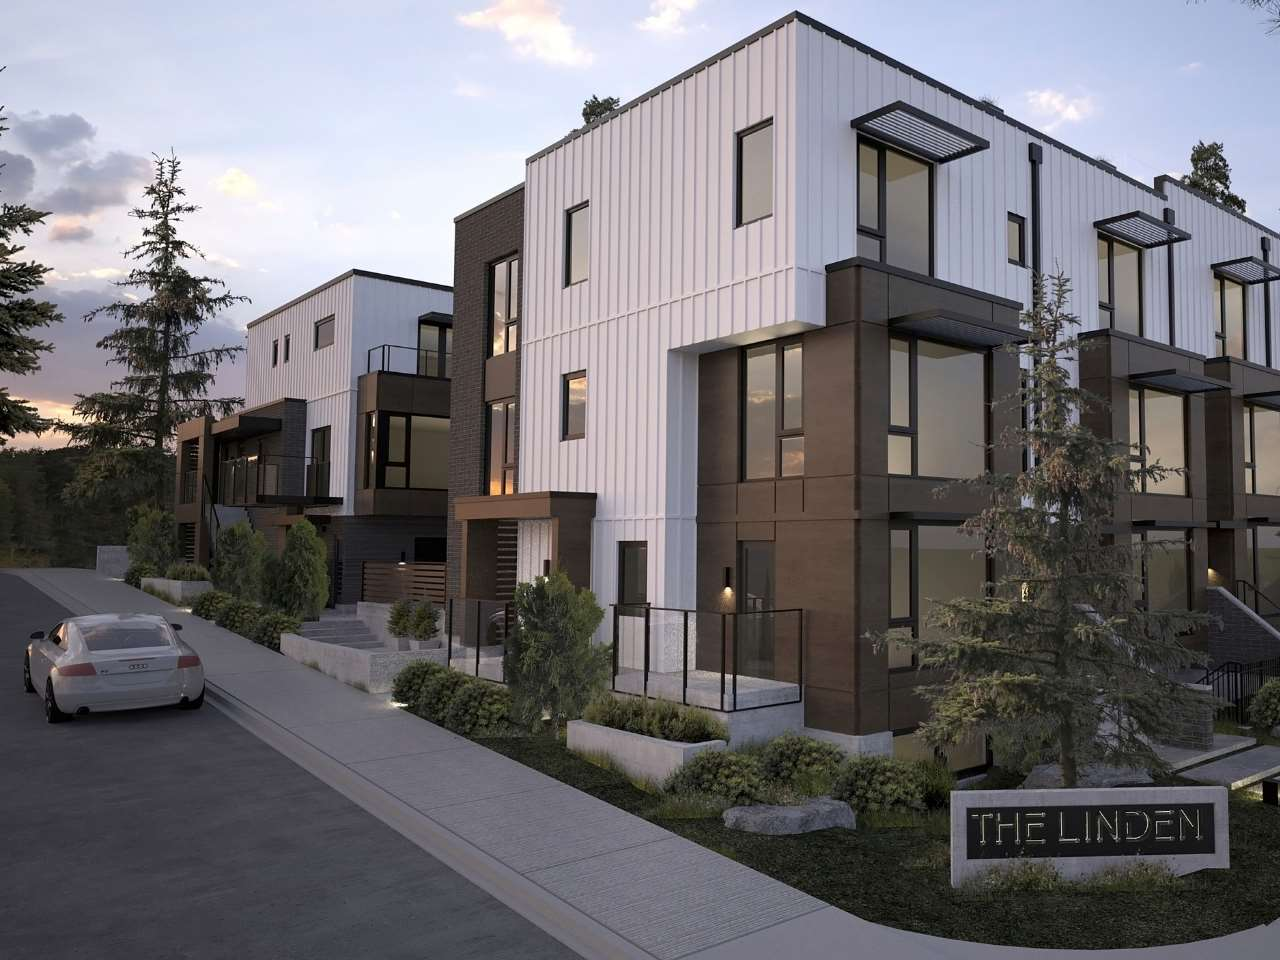 TH1 610 E 3RD STREET - Lower Lonsdale Townhouse for sale, 4 Bedrooms (R2516439)